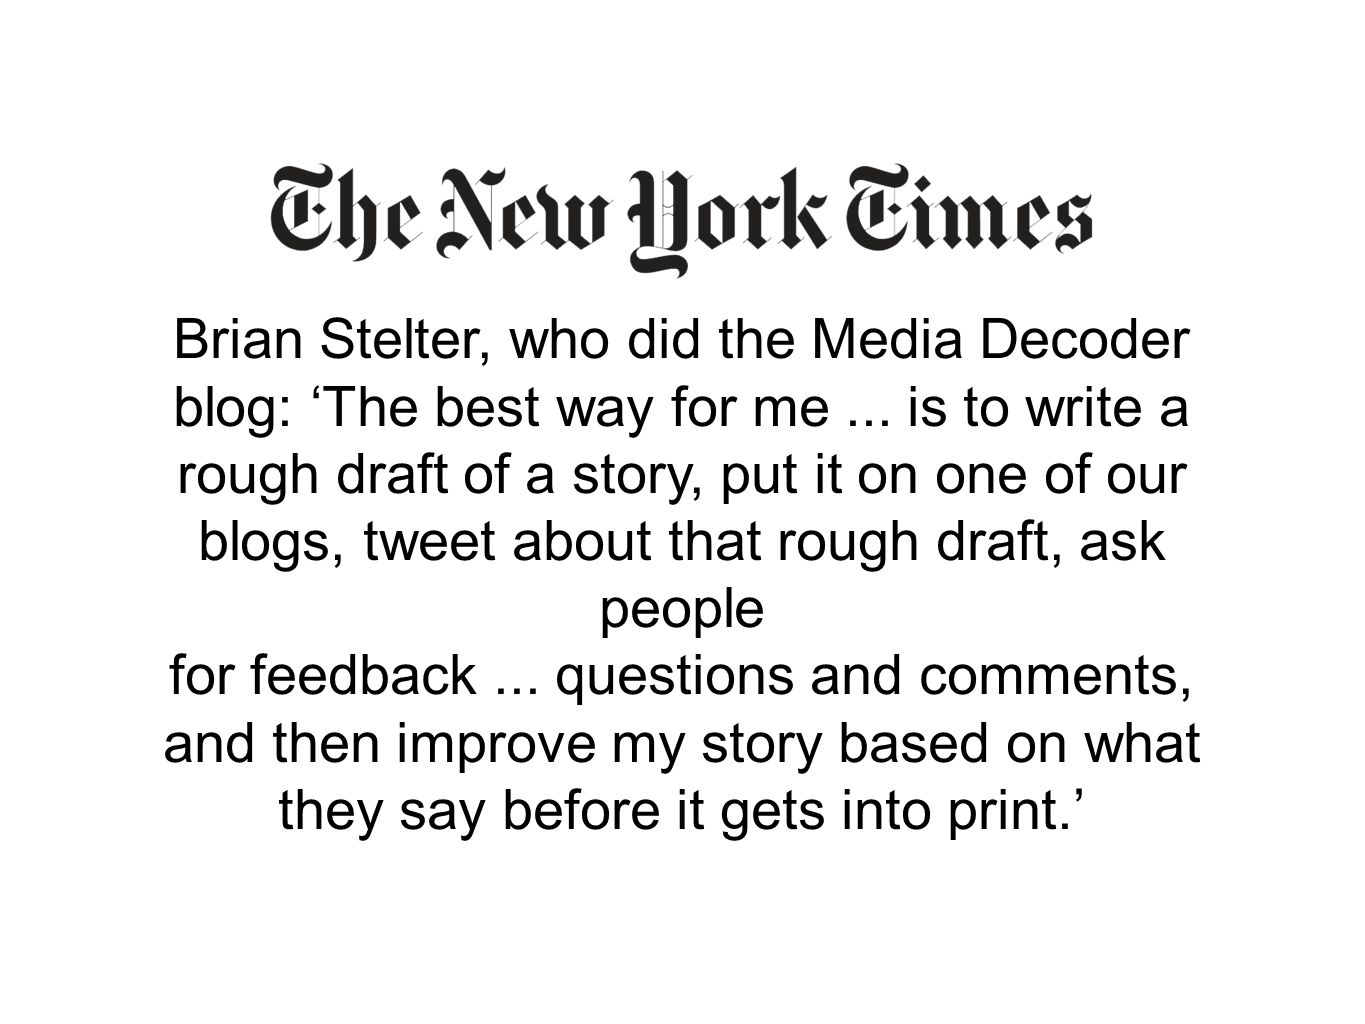 Brian Stelter, who did the Media Decoder blog: 'The best way for me...